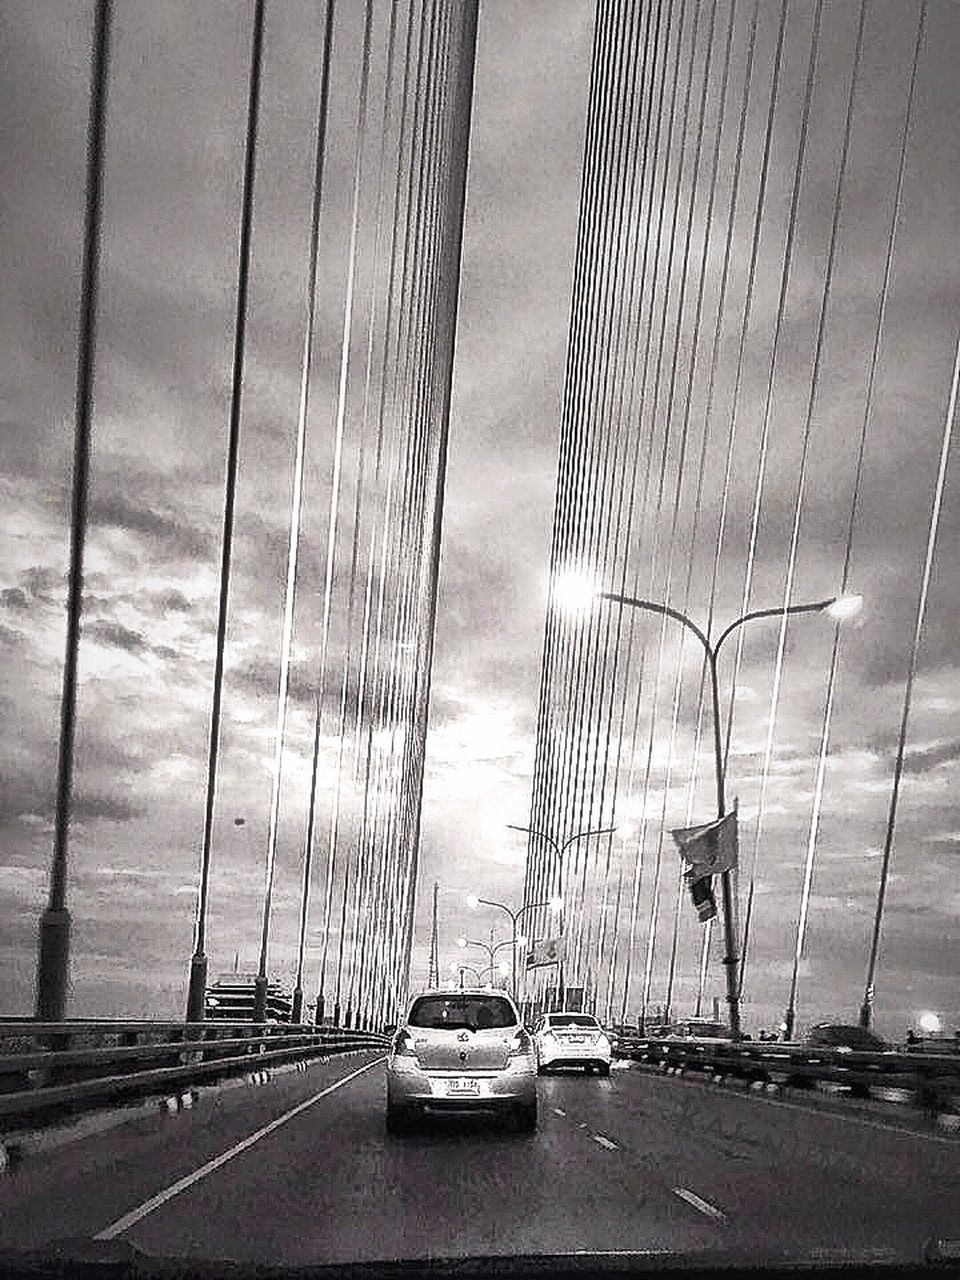 car, transportation, suspension bridge, land vehicle, bridge - man made structure, mode of transport, sky, traffic, road, cloud - sky, the way forward, street, connection, city, architecture, outdoors, built structure, no people, day